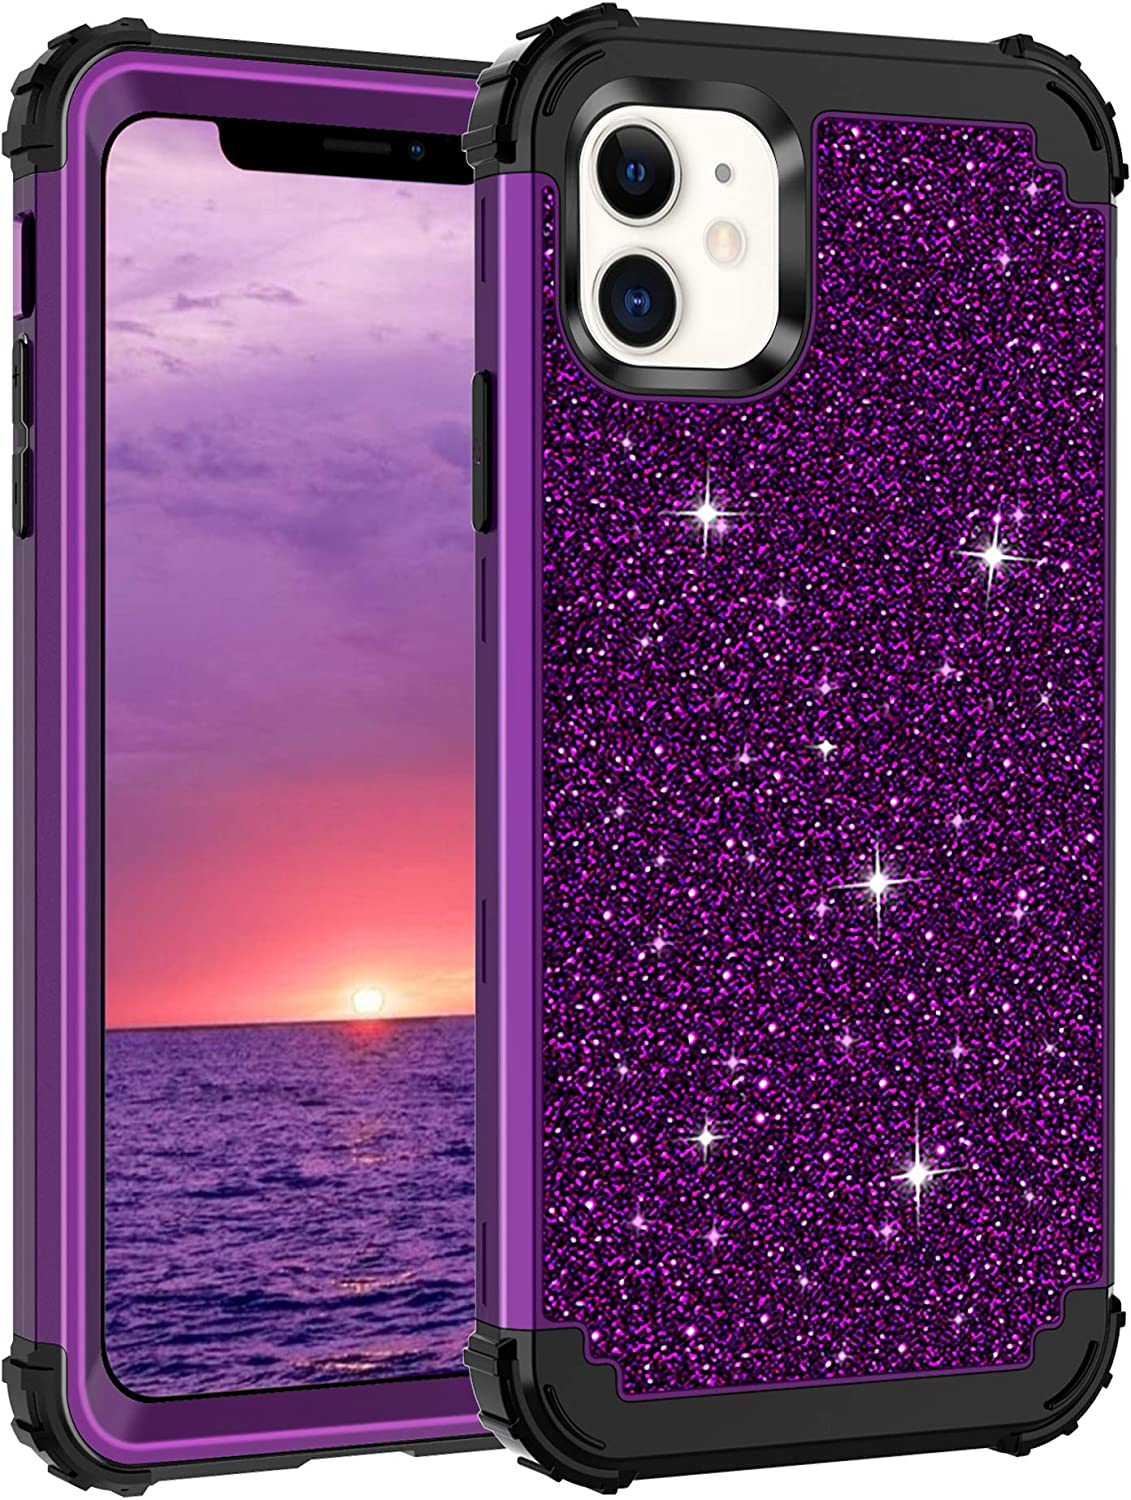 Lontect Compatible iPhone 11 Case Glitter Sparkle Bling Heavy Duty Hybrid Sturdy High Impact Shockproof Protective Cover Case for Apple iPhone 11 6.1 2019, Shiny Purple/Black